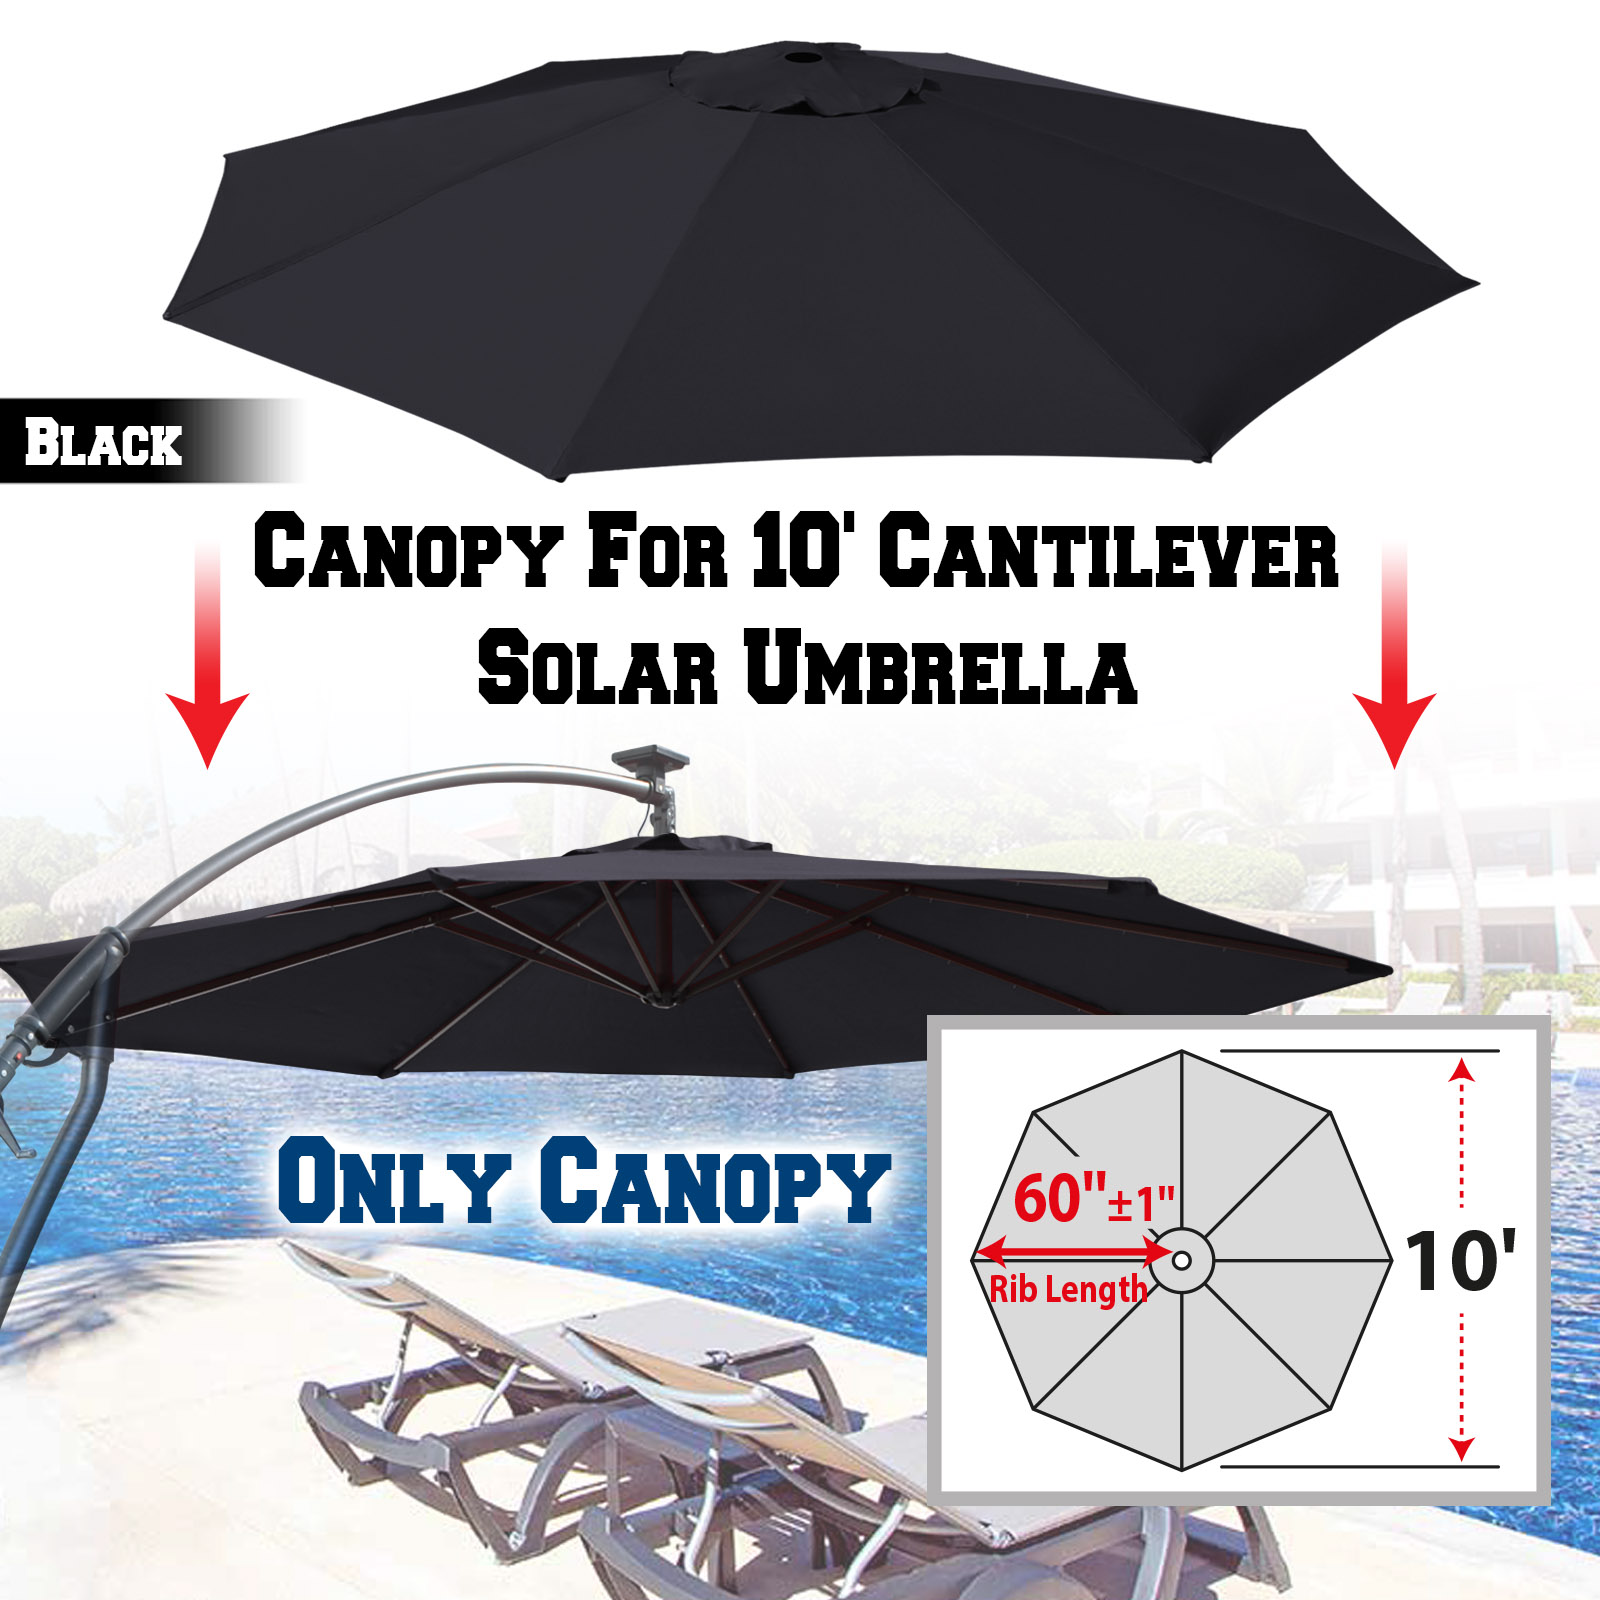 Strong Camel Replacement Canopy Cover for 10u0027 Cantilever Patio Umbrella Offest Parasol Top Cover (Black)  sc 1 st  Walmart & Strong Camel Replacement Canopy Cover for 10u0027 Cantilever Patio ...